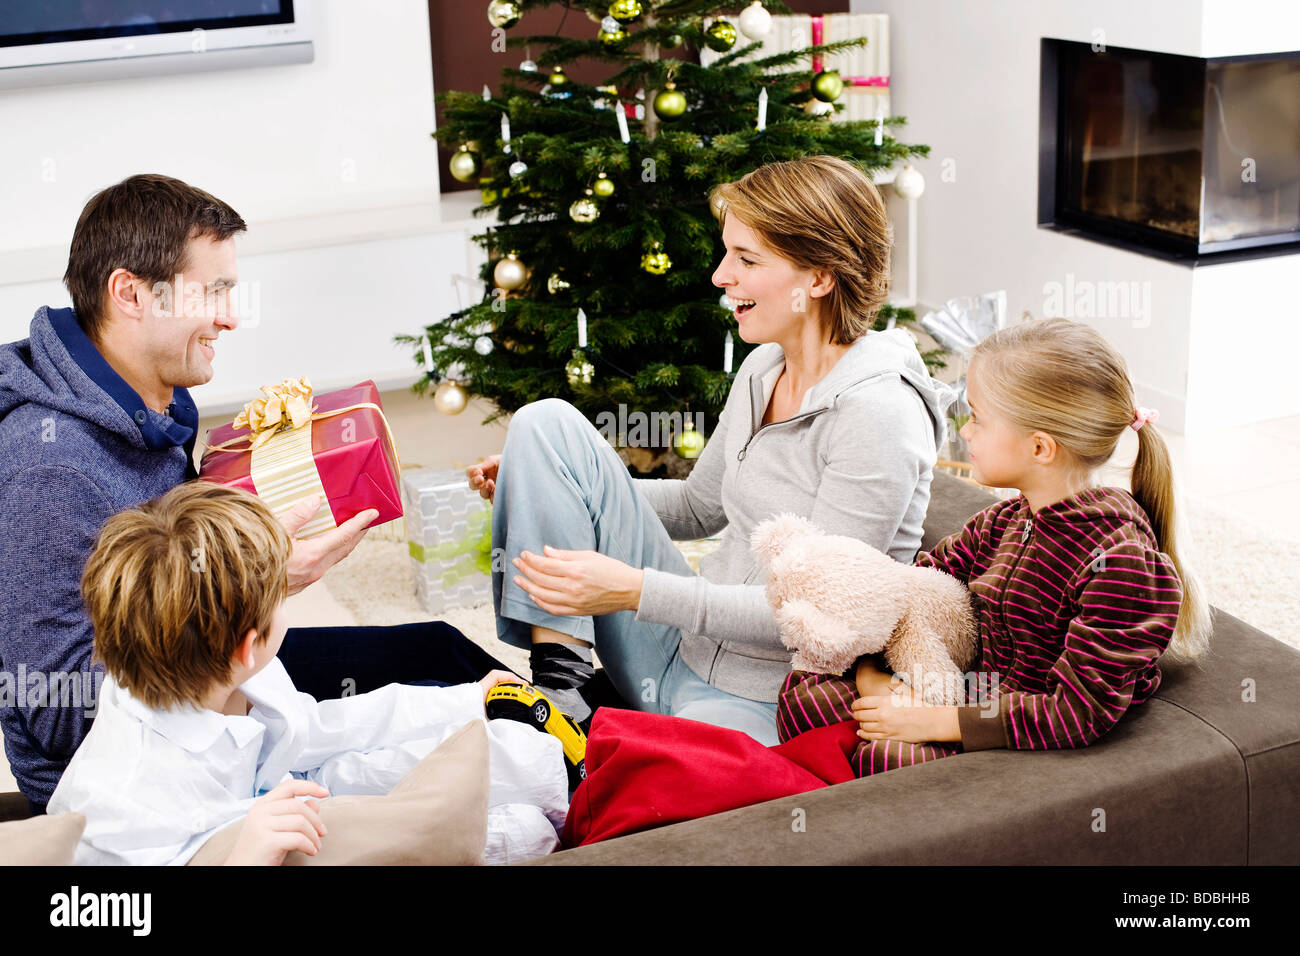 family exchanging presents on christmas morning - Stock Image